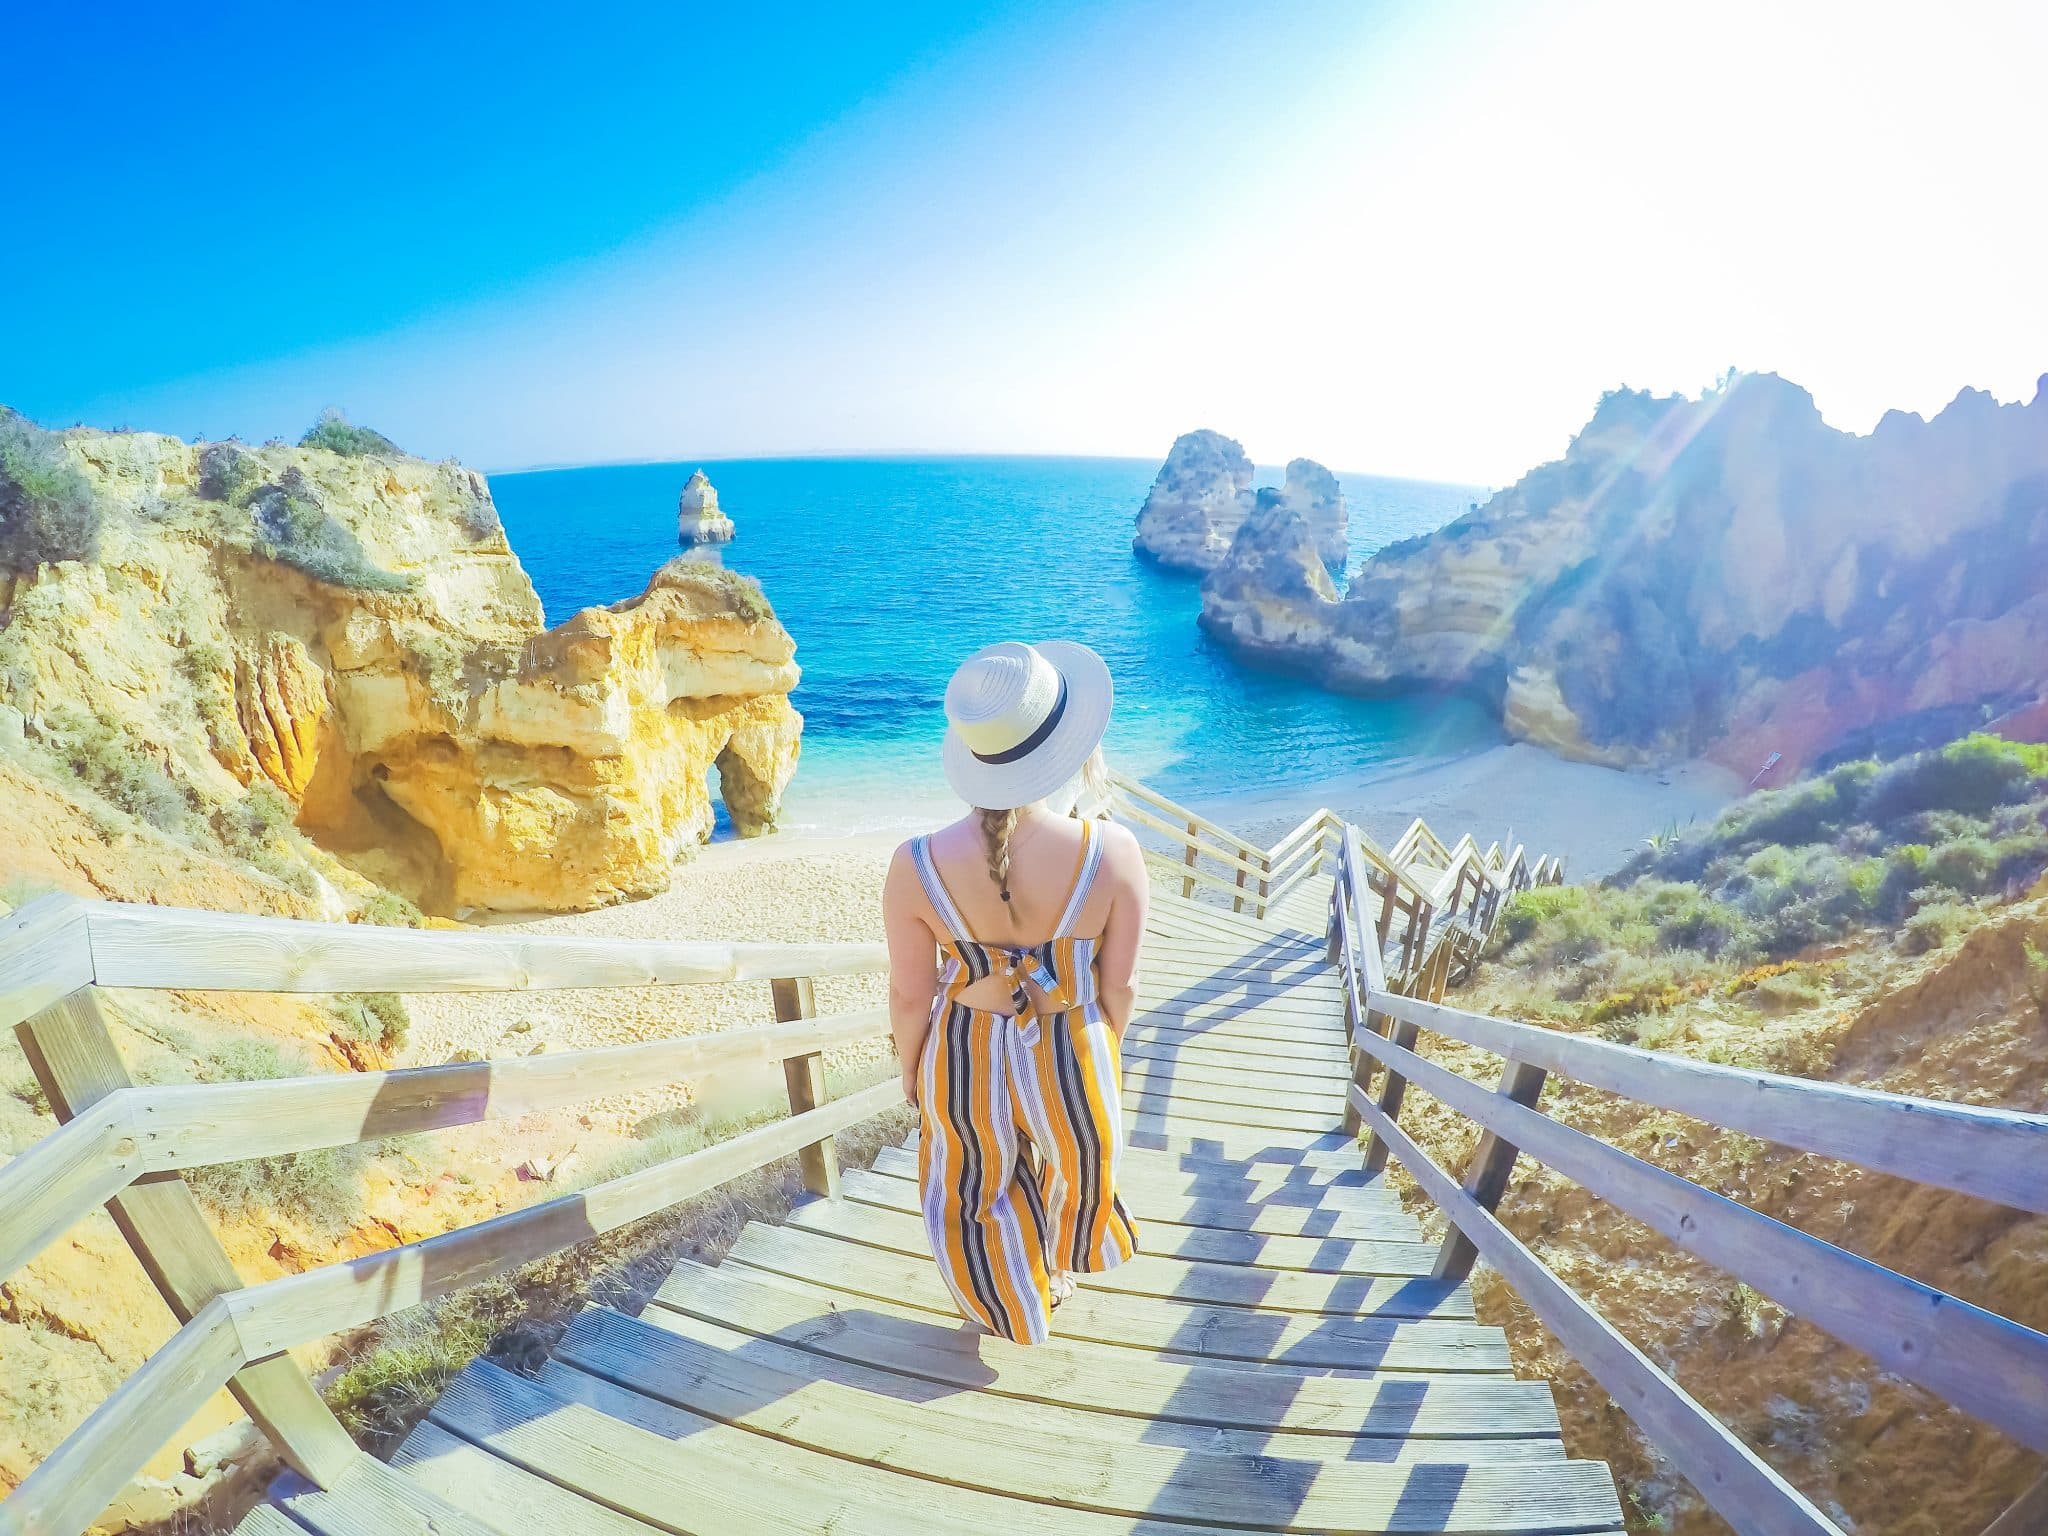 cf40e5021c Where to Find the Best Beaches in Algarve